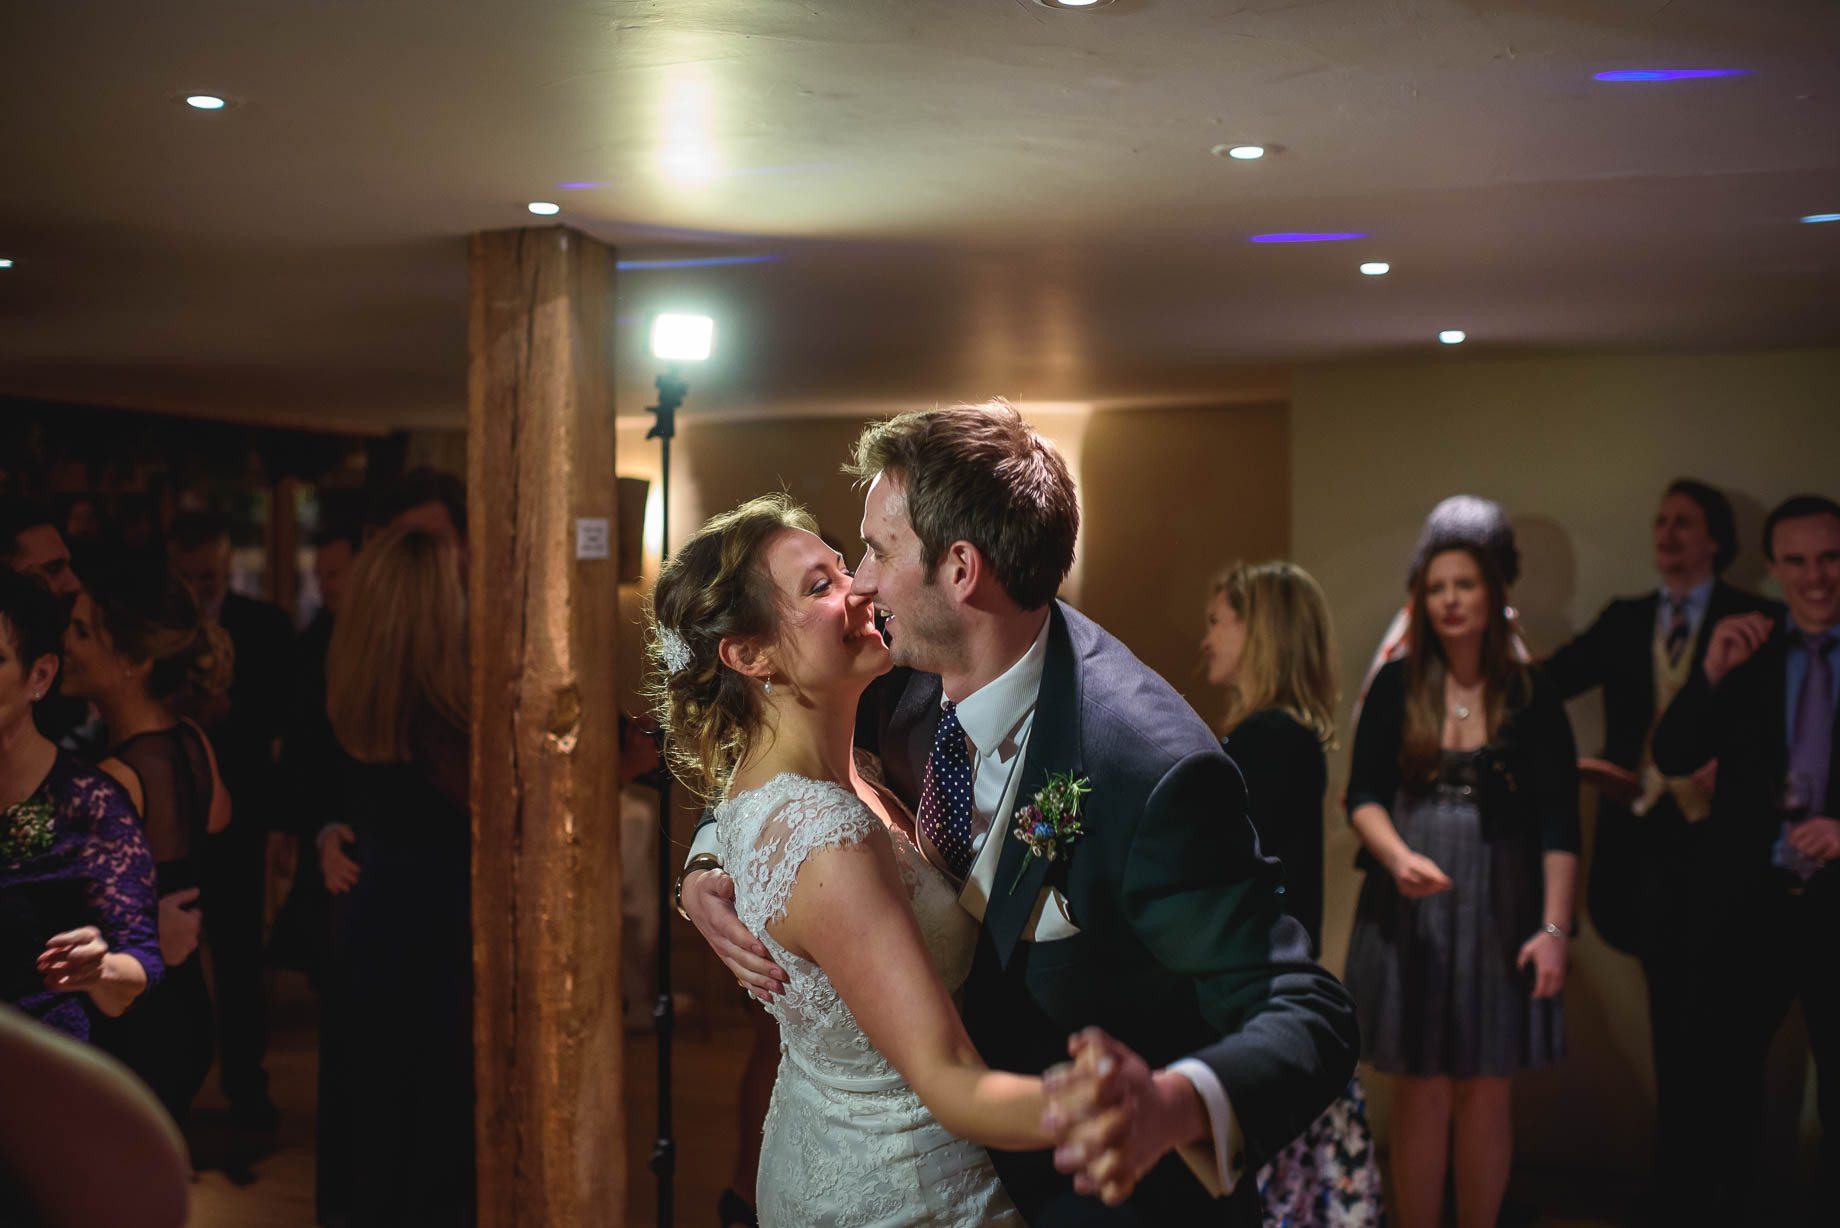 Bury Court Barn wedding photography - Ashley and Henry by Guy Collier Photography (170 of 188)